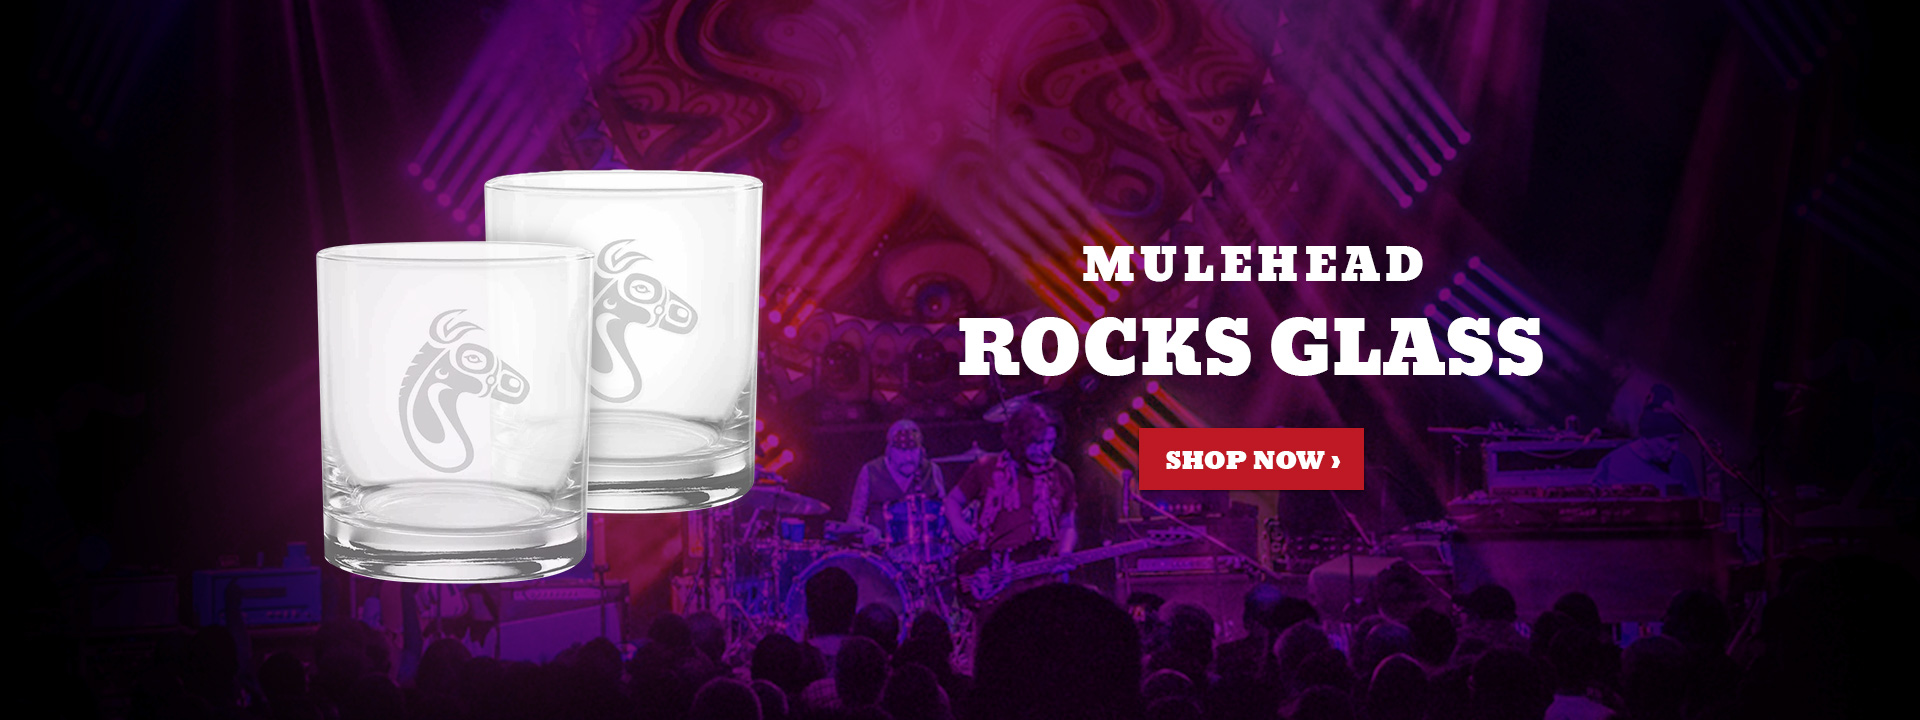 Mulehead Rocks Glass